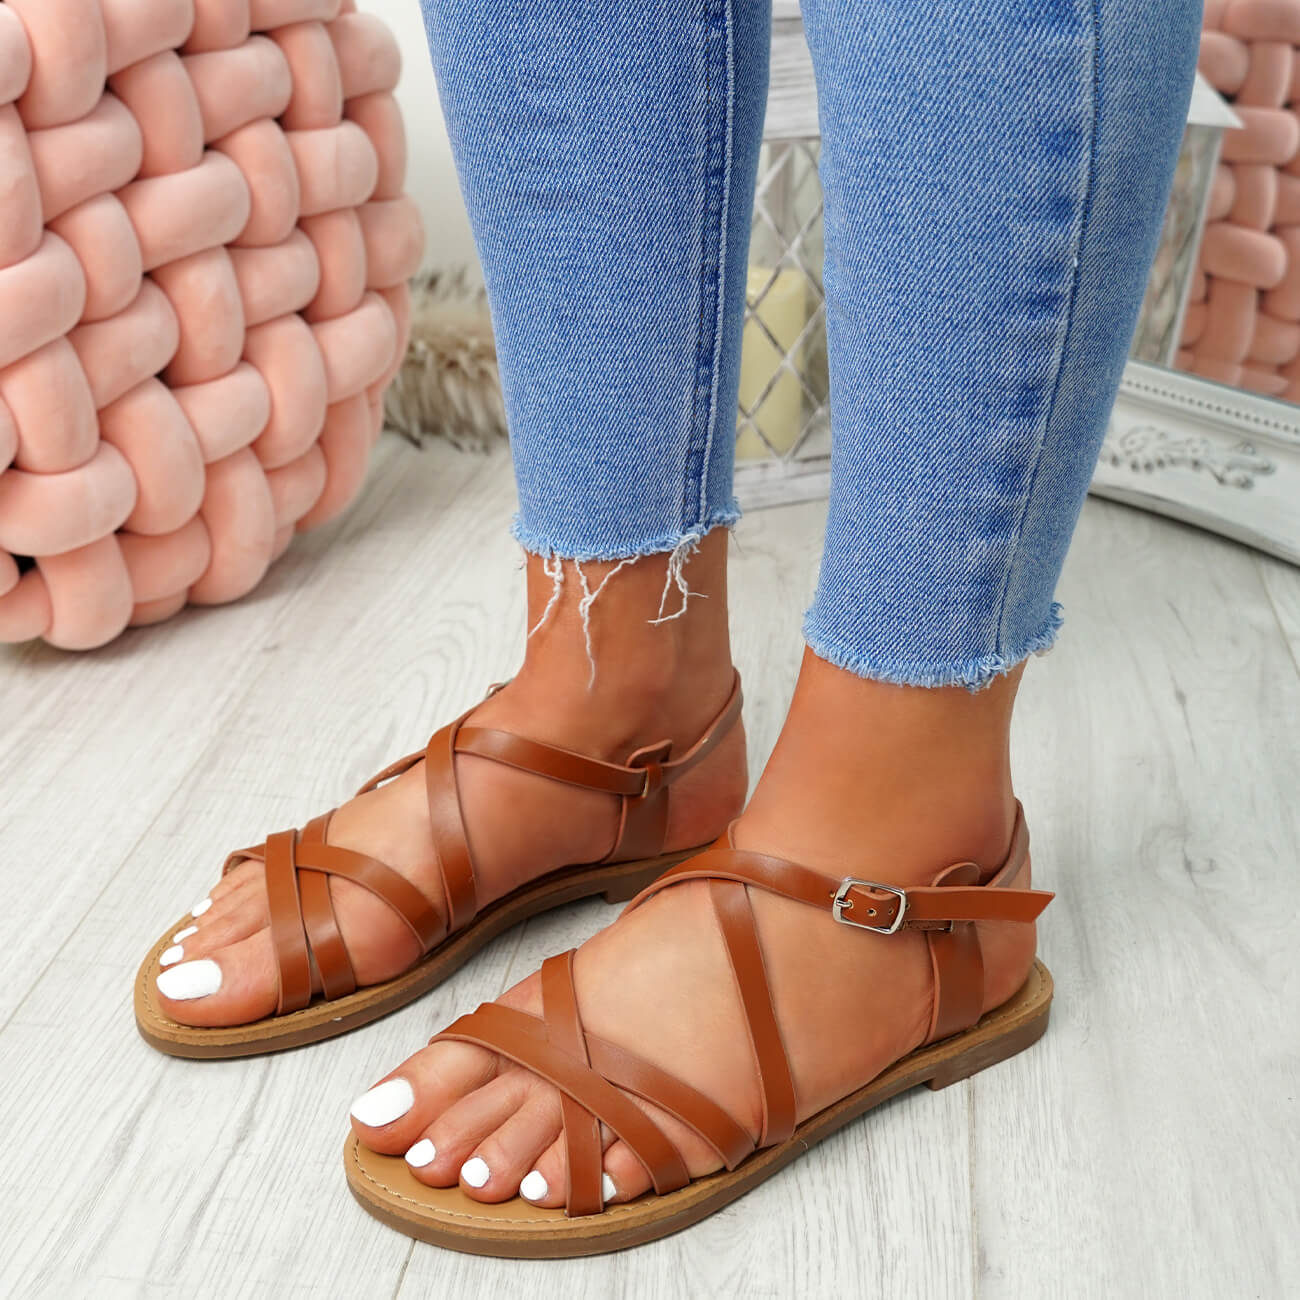 WOMENS-LADIES-ANKLE-STRAP-PEEP-TOE-BUCKLE-FLAT-SANDALS-SUMMER-CASUAL-SHOES thumbnail 15